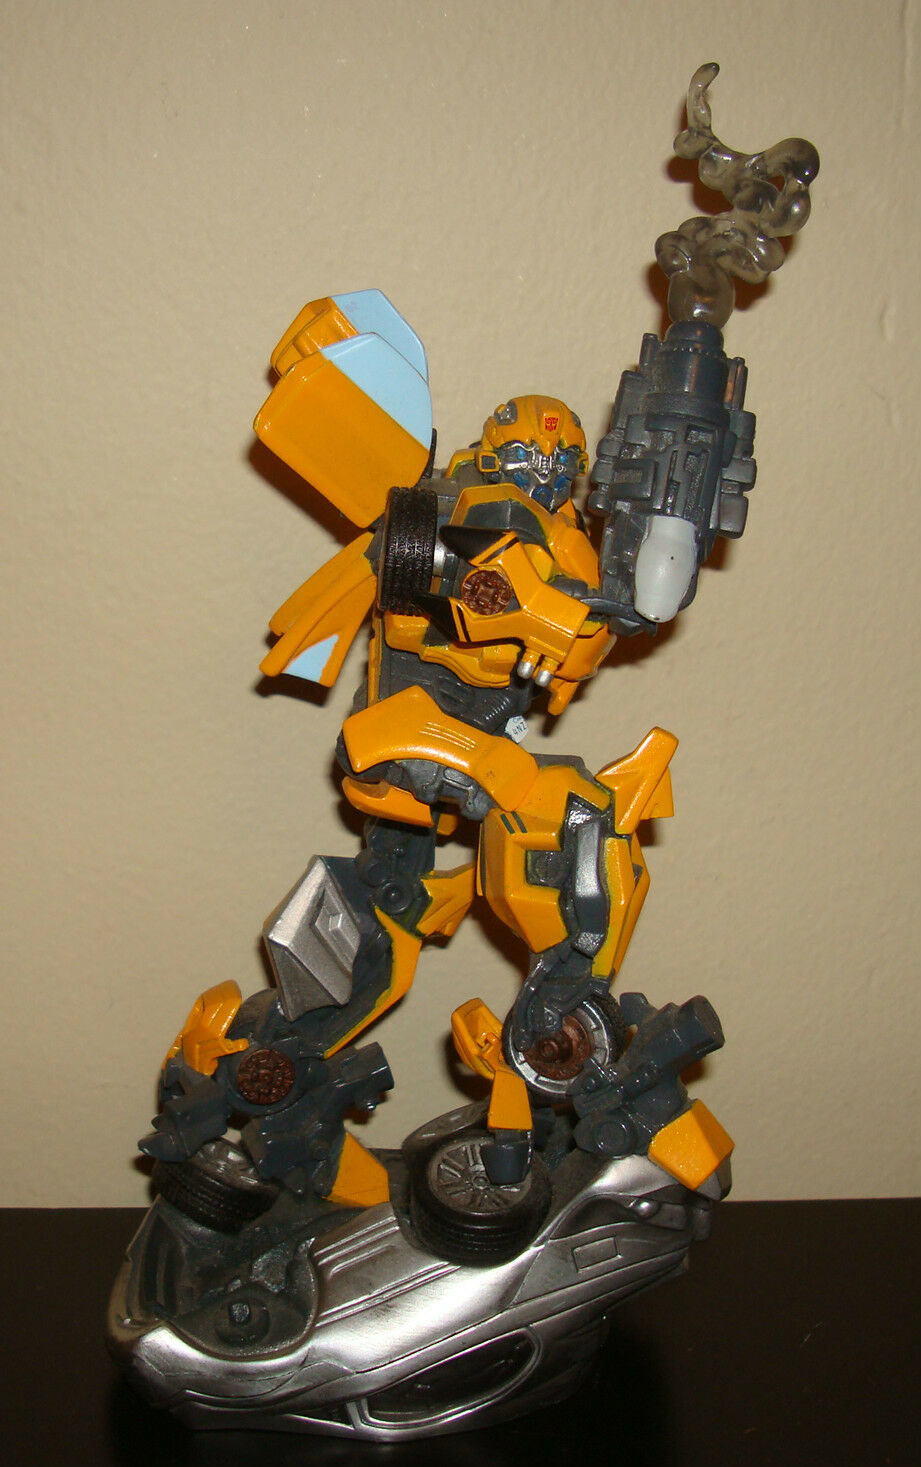 TRANSFORMERS BUMBLE BEE Figurine Toy DESK FIGURE 2006 Hasbro Robot Movie Picture